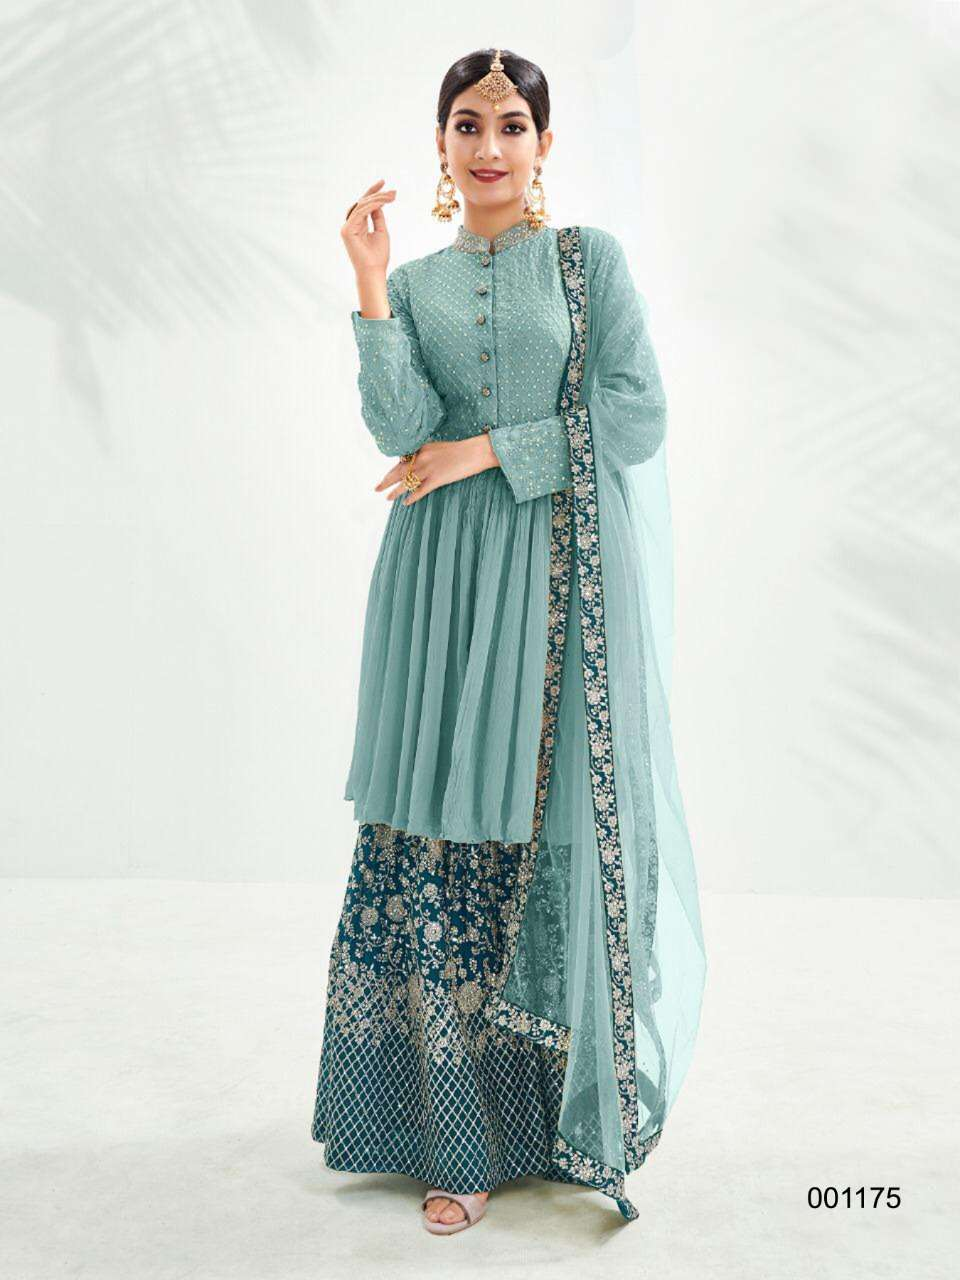 EBAA 001173 DESIGNER GEORGETTE WITH EMBROIDERY WORK HEAVY WORK PARTYWEAR SUITS IN SINGLES